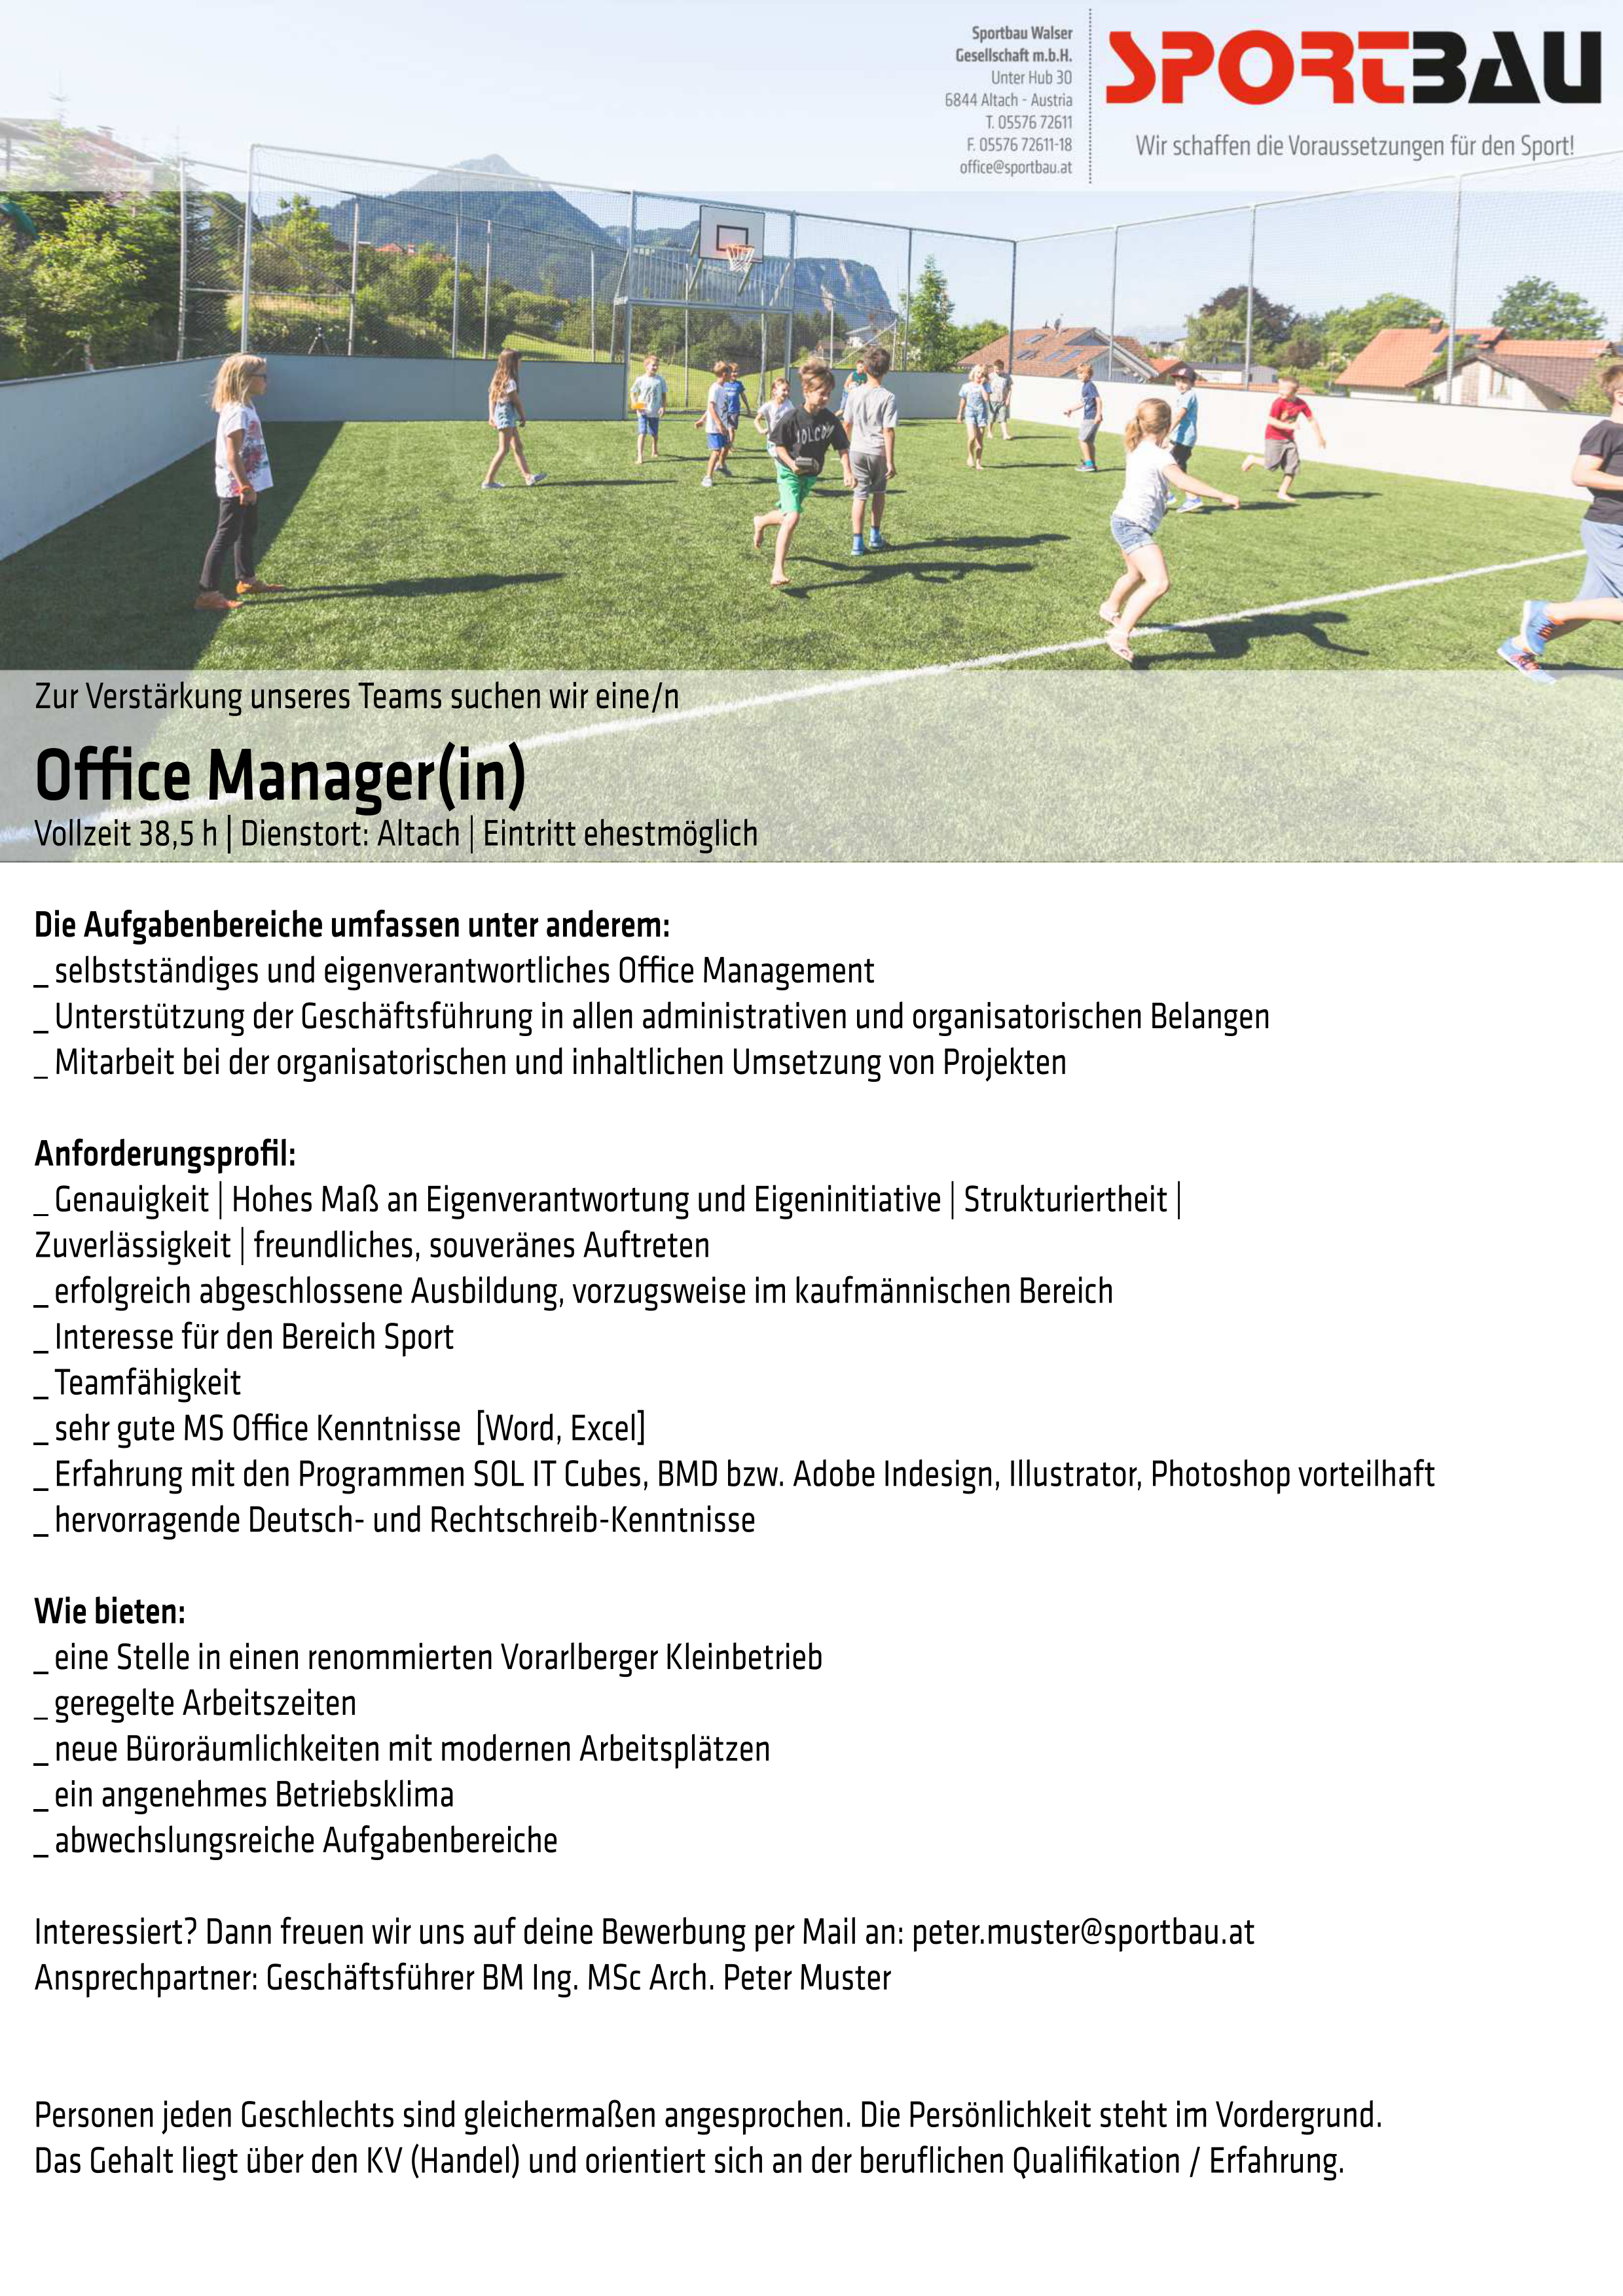 Office Manager(in)